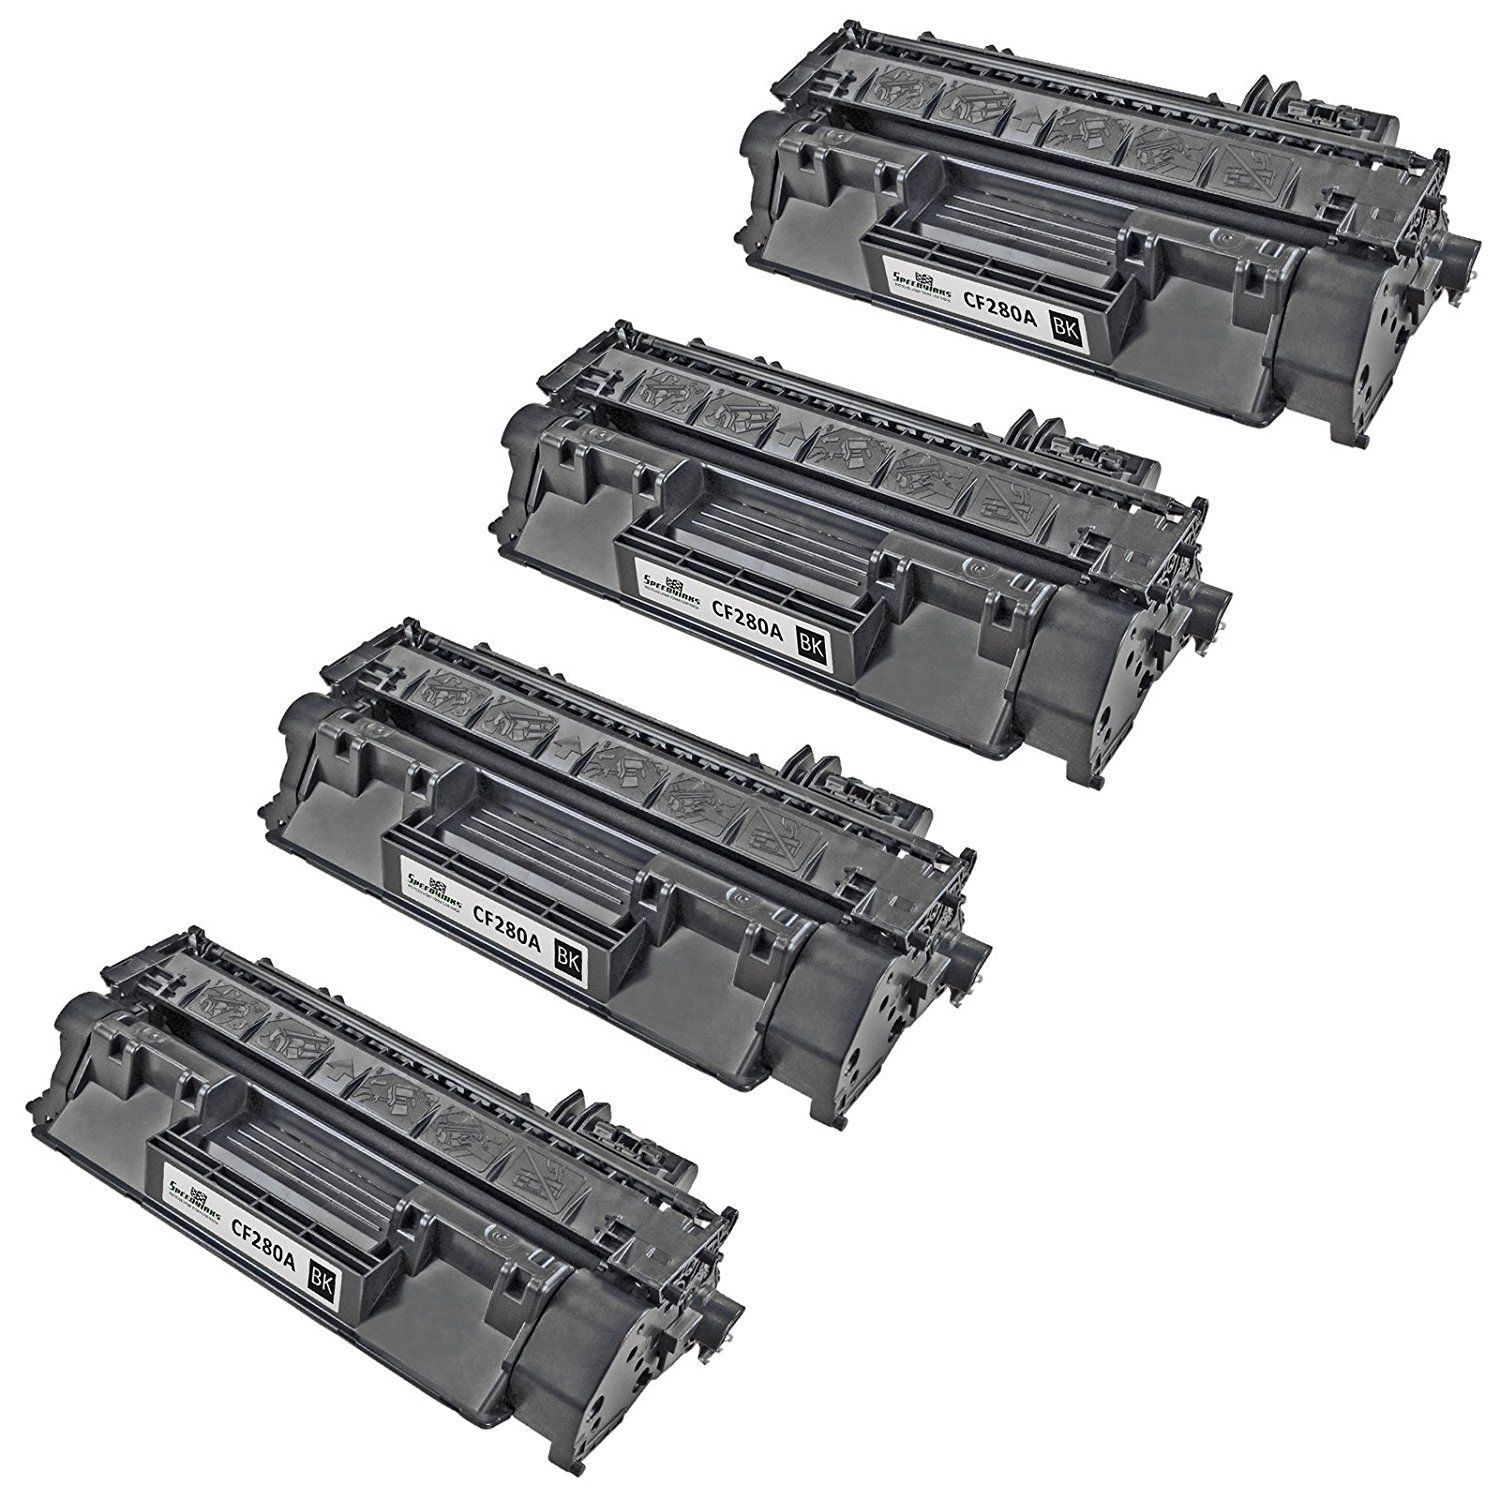 Speedy Inks - 4 Pack Compatible Replacement for HP 80A CF280A Black Laser Toner Cartridge for use in LaserJet Pro 400 M401dn, M401dne, M401dw, M401n, M425dn